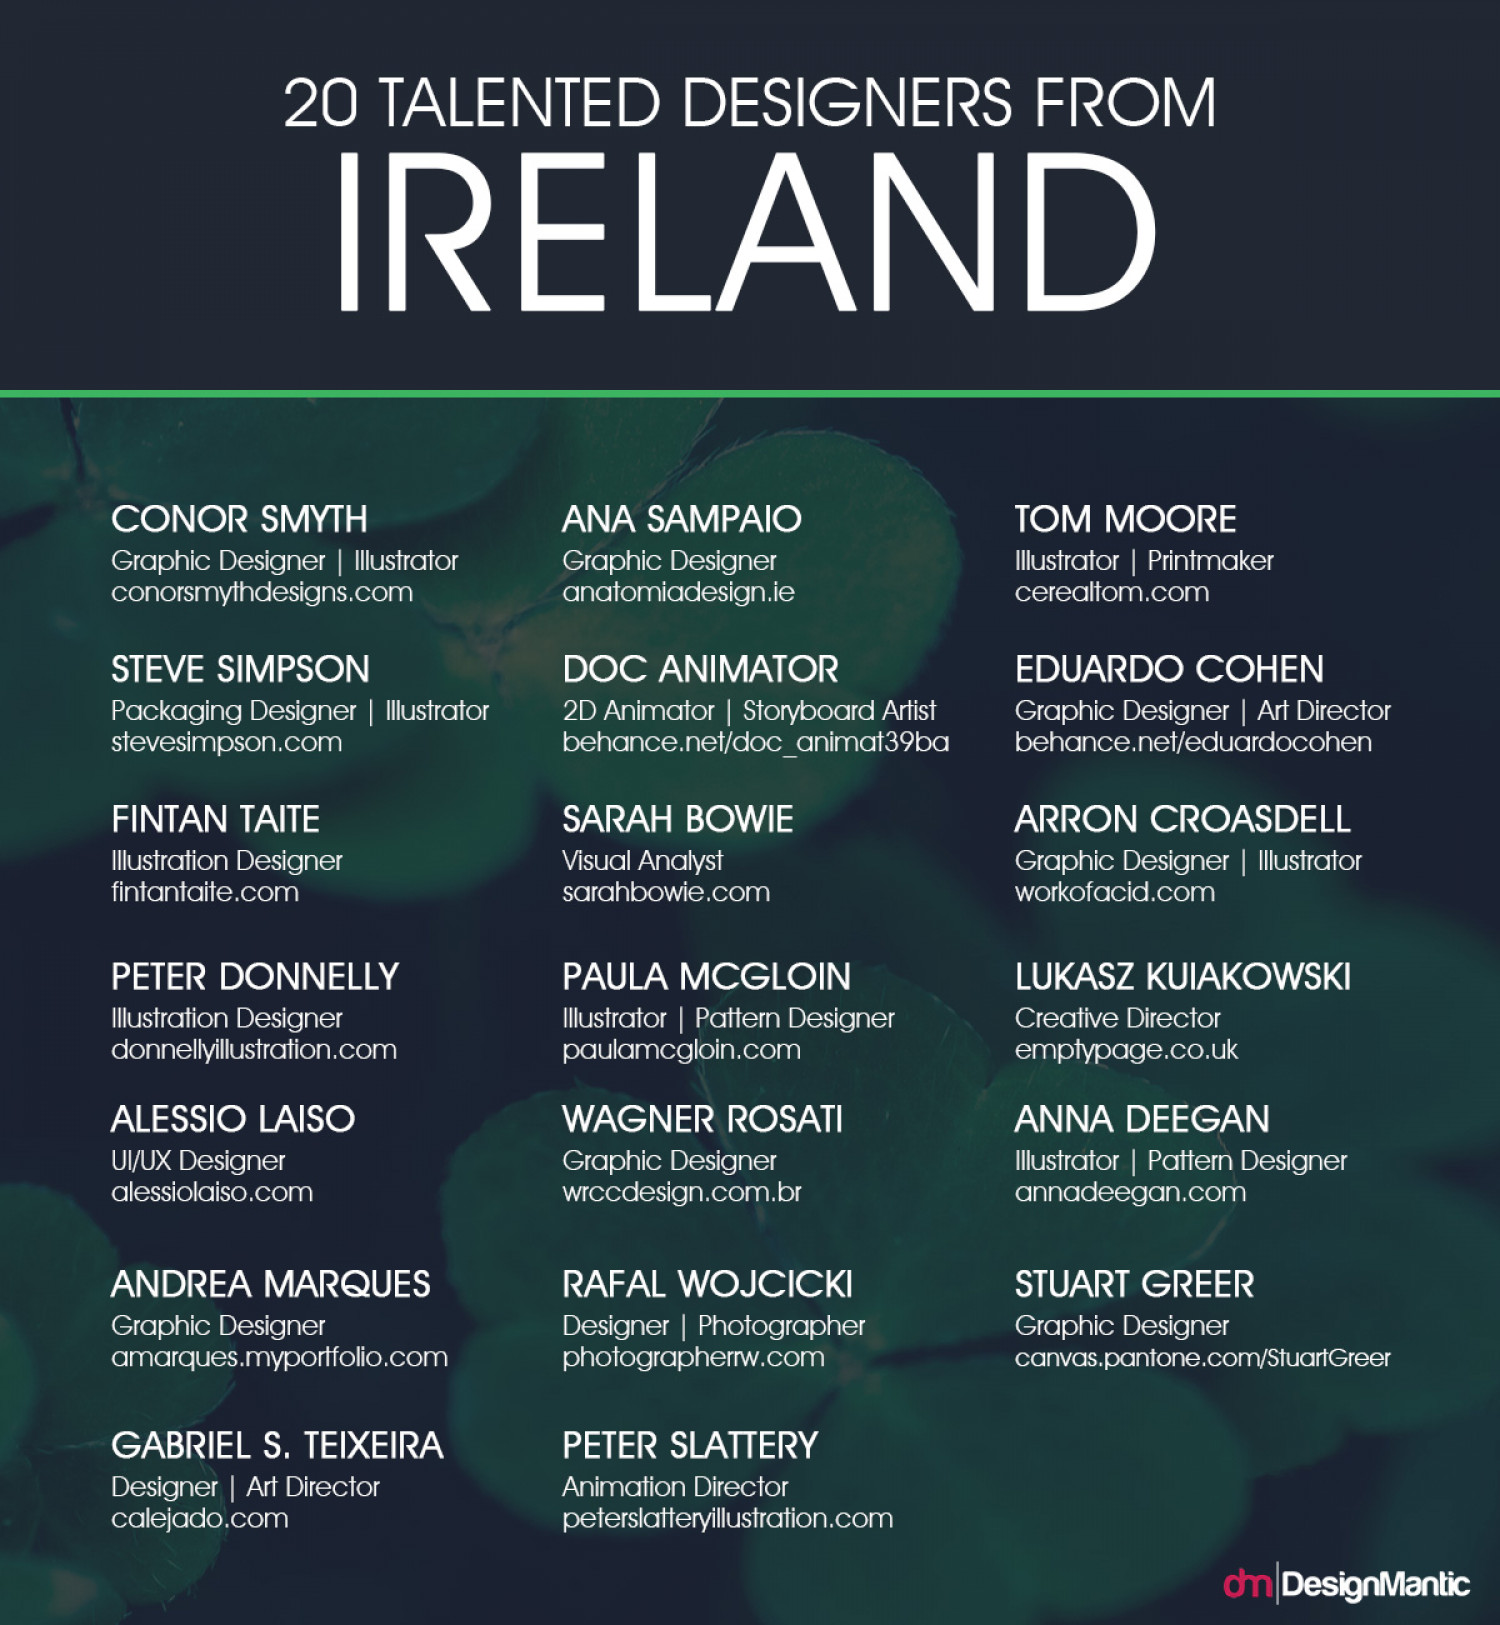 20 Talented Designers From Ireland Infographic